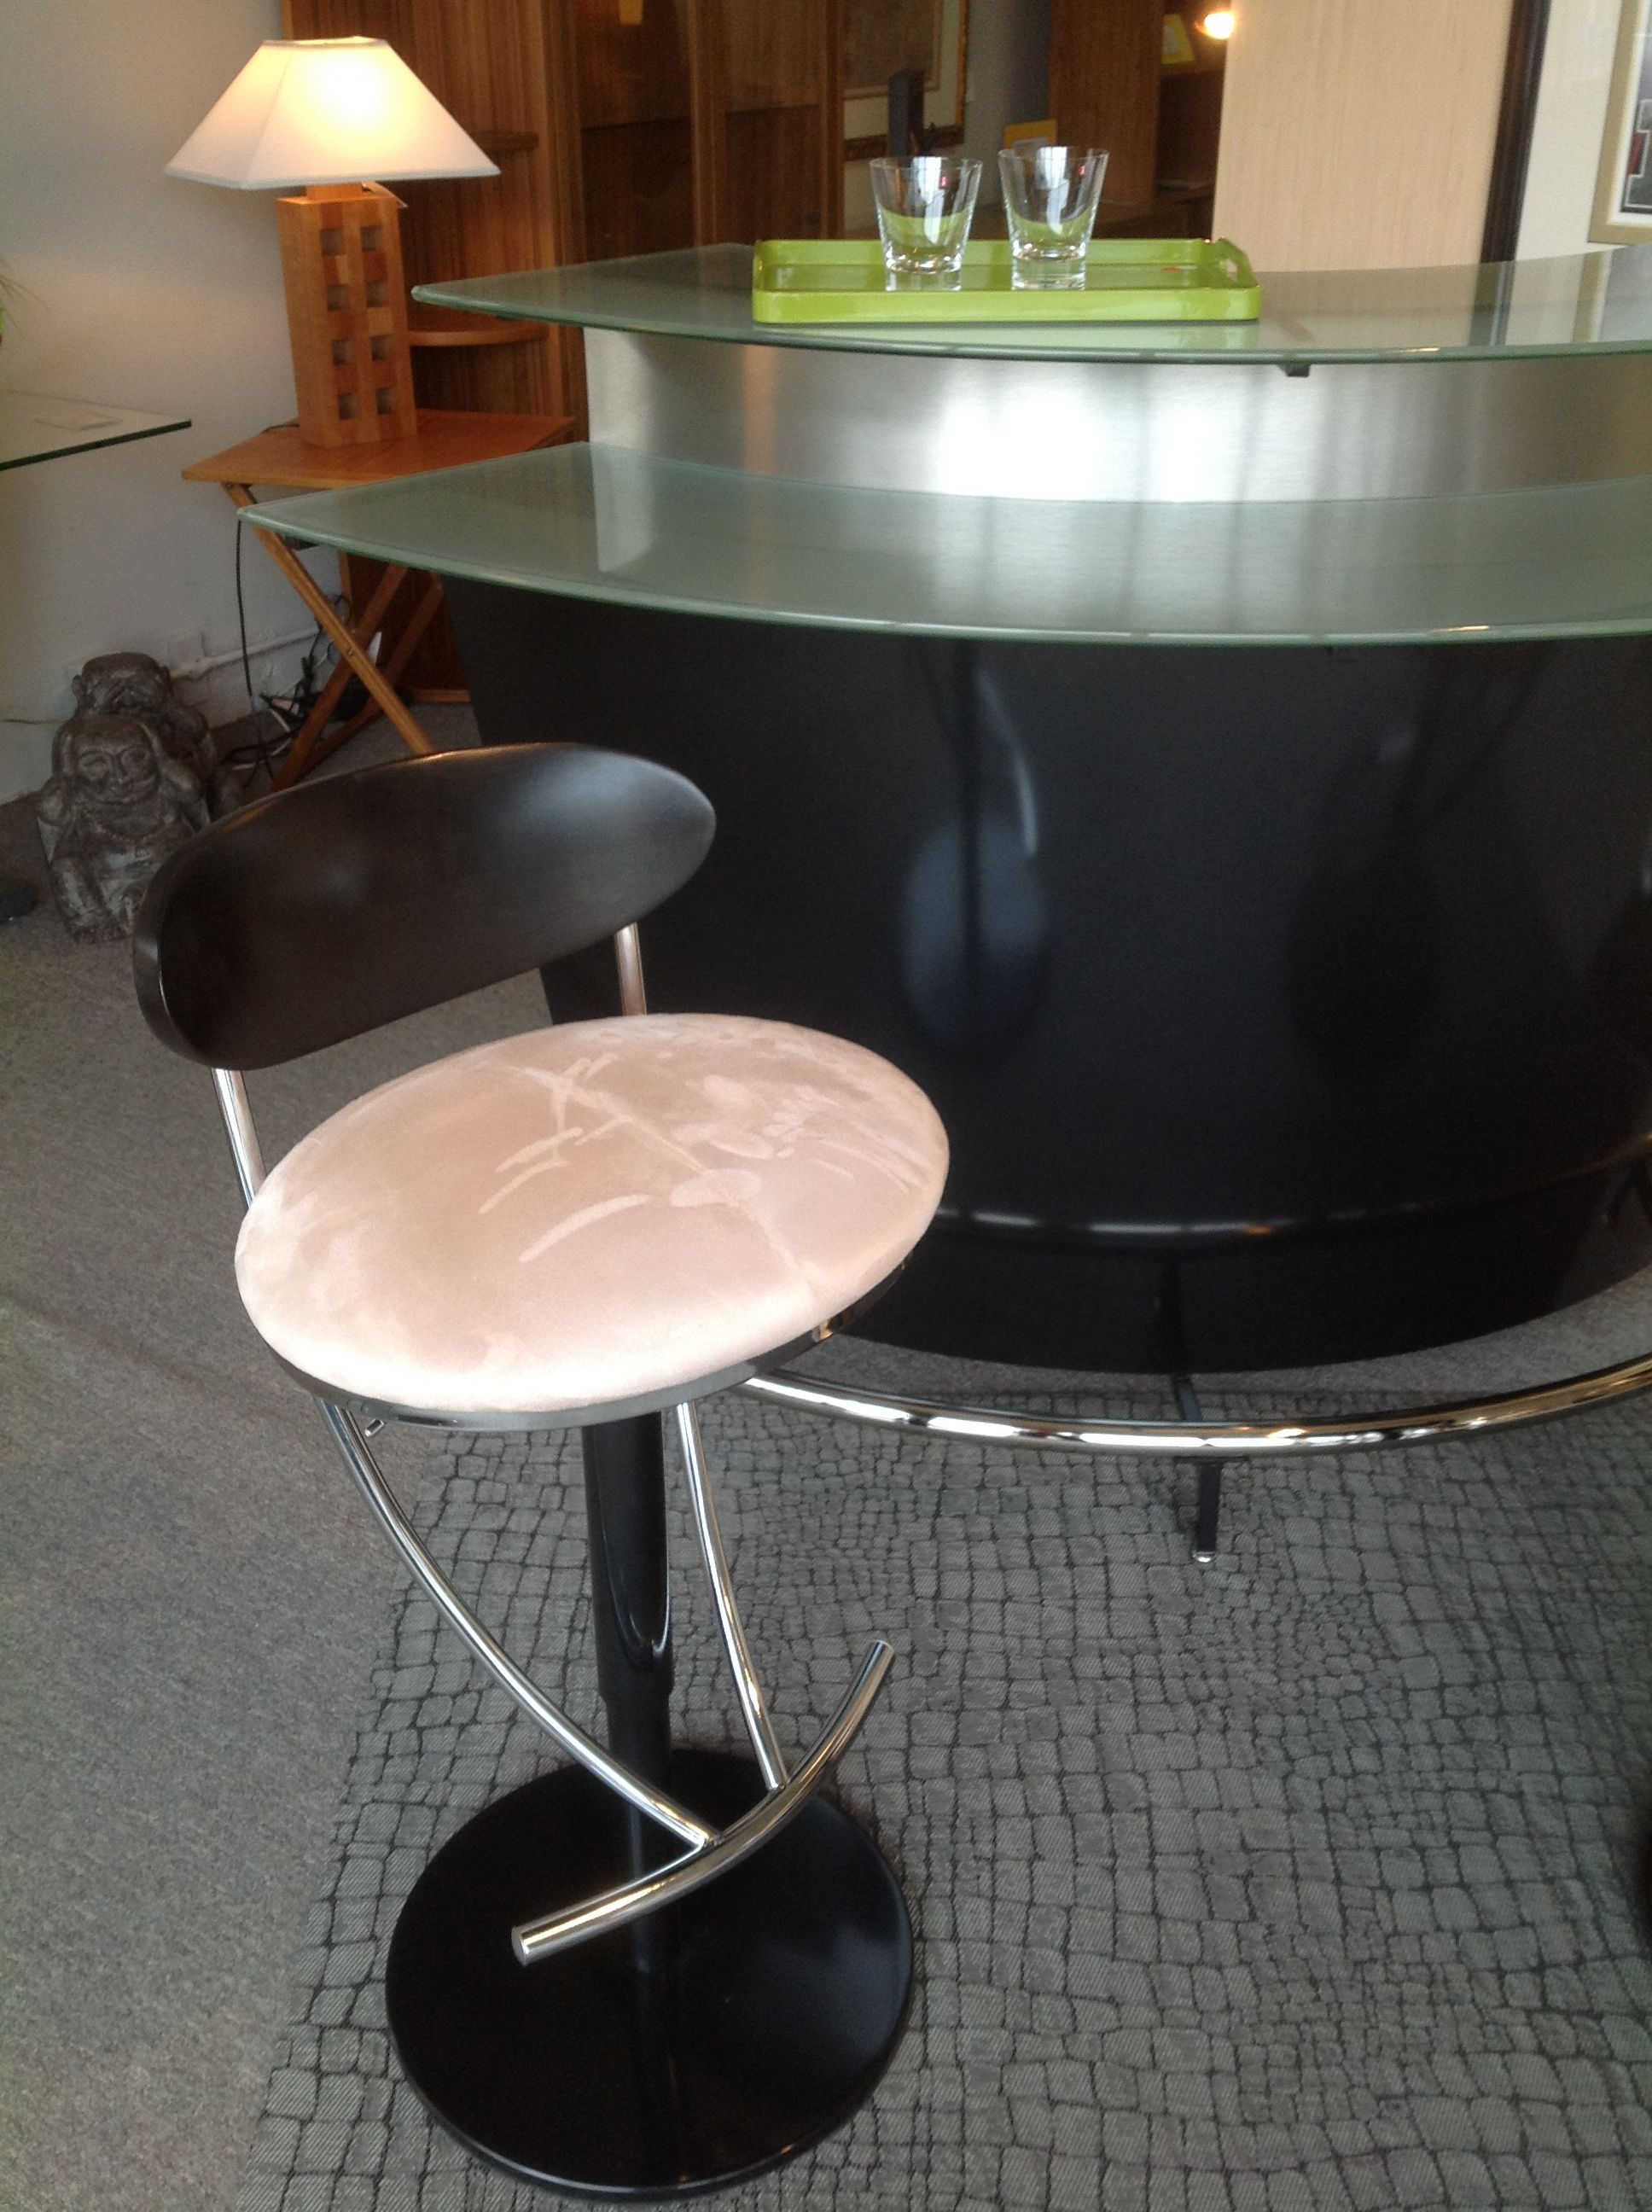 Martini Bar with Nova Barstool, Available at Scanhome Furnishings in Green Bay.